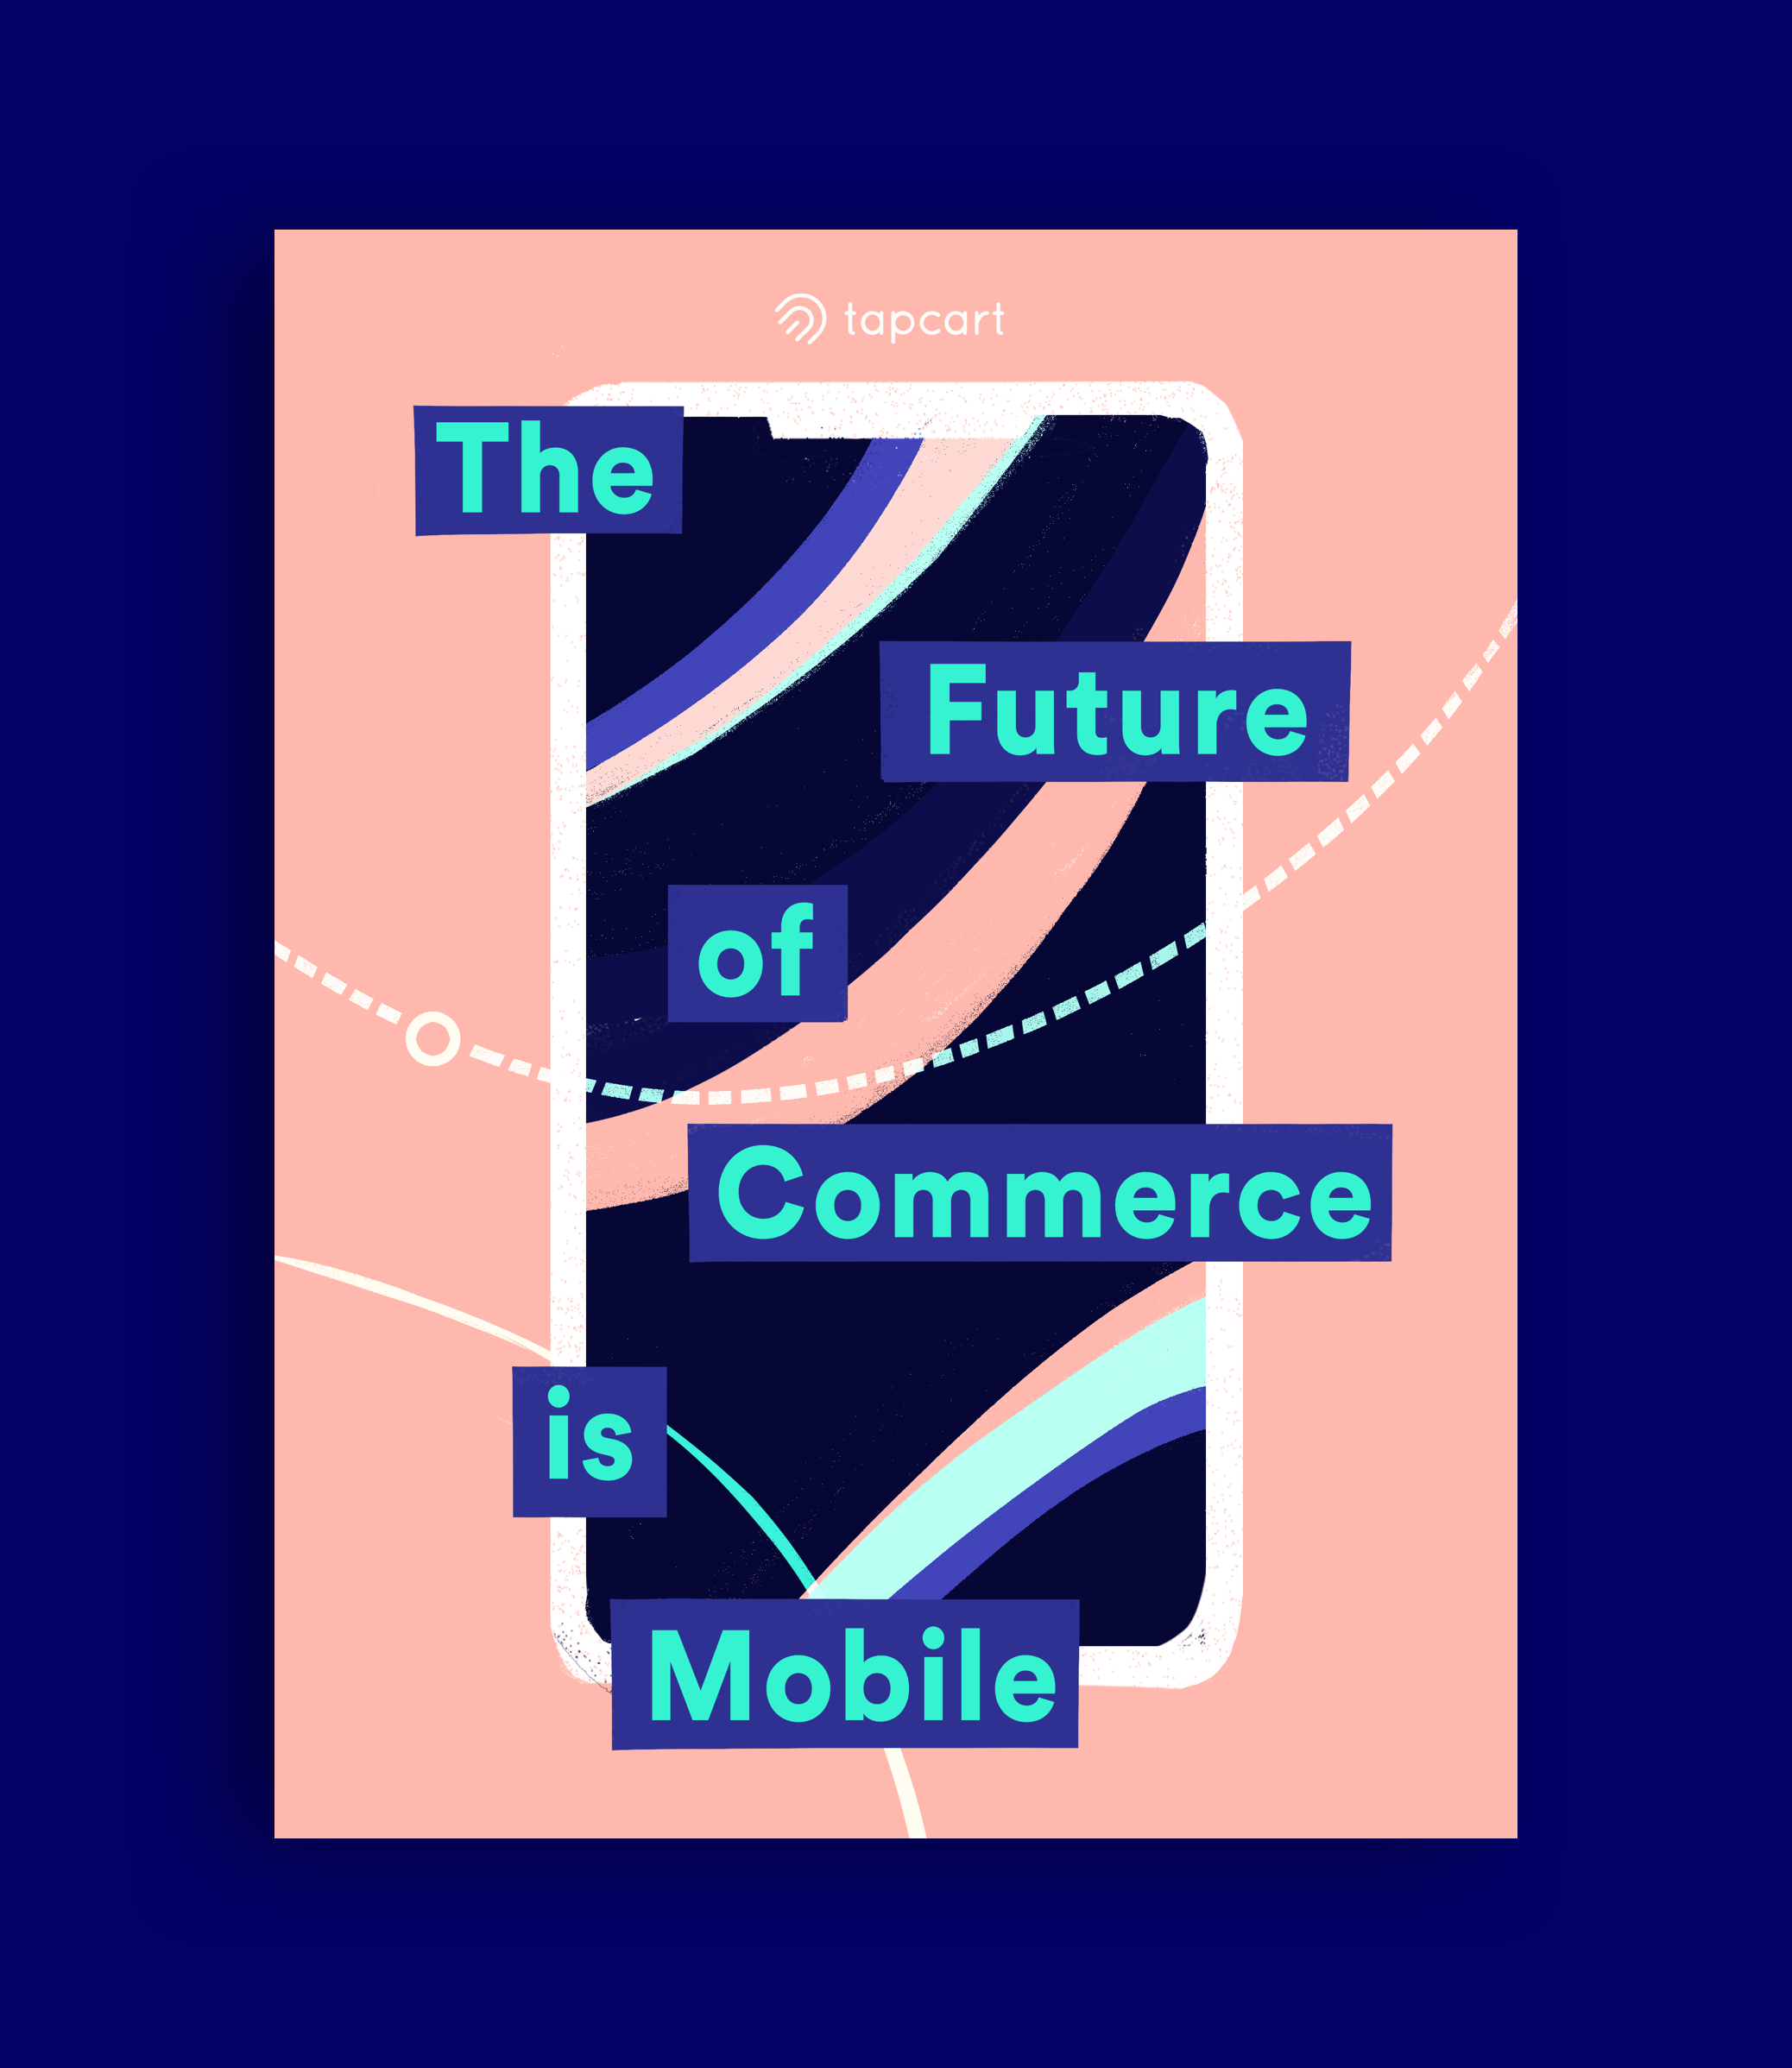 The Future of Commerce is Mobile